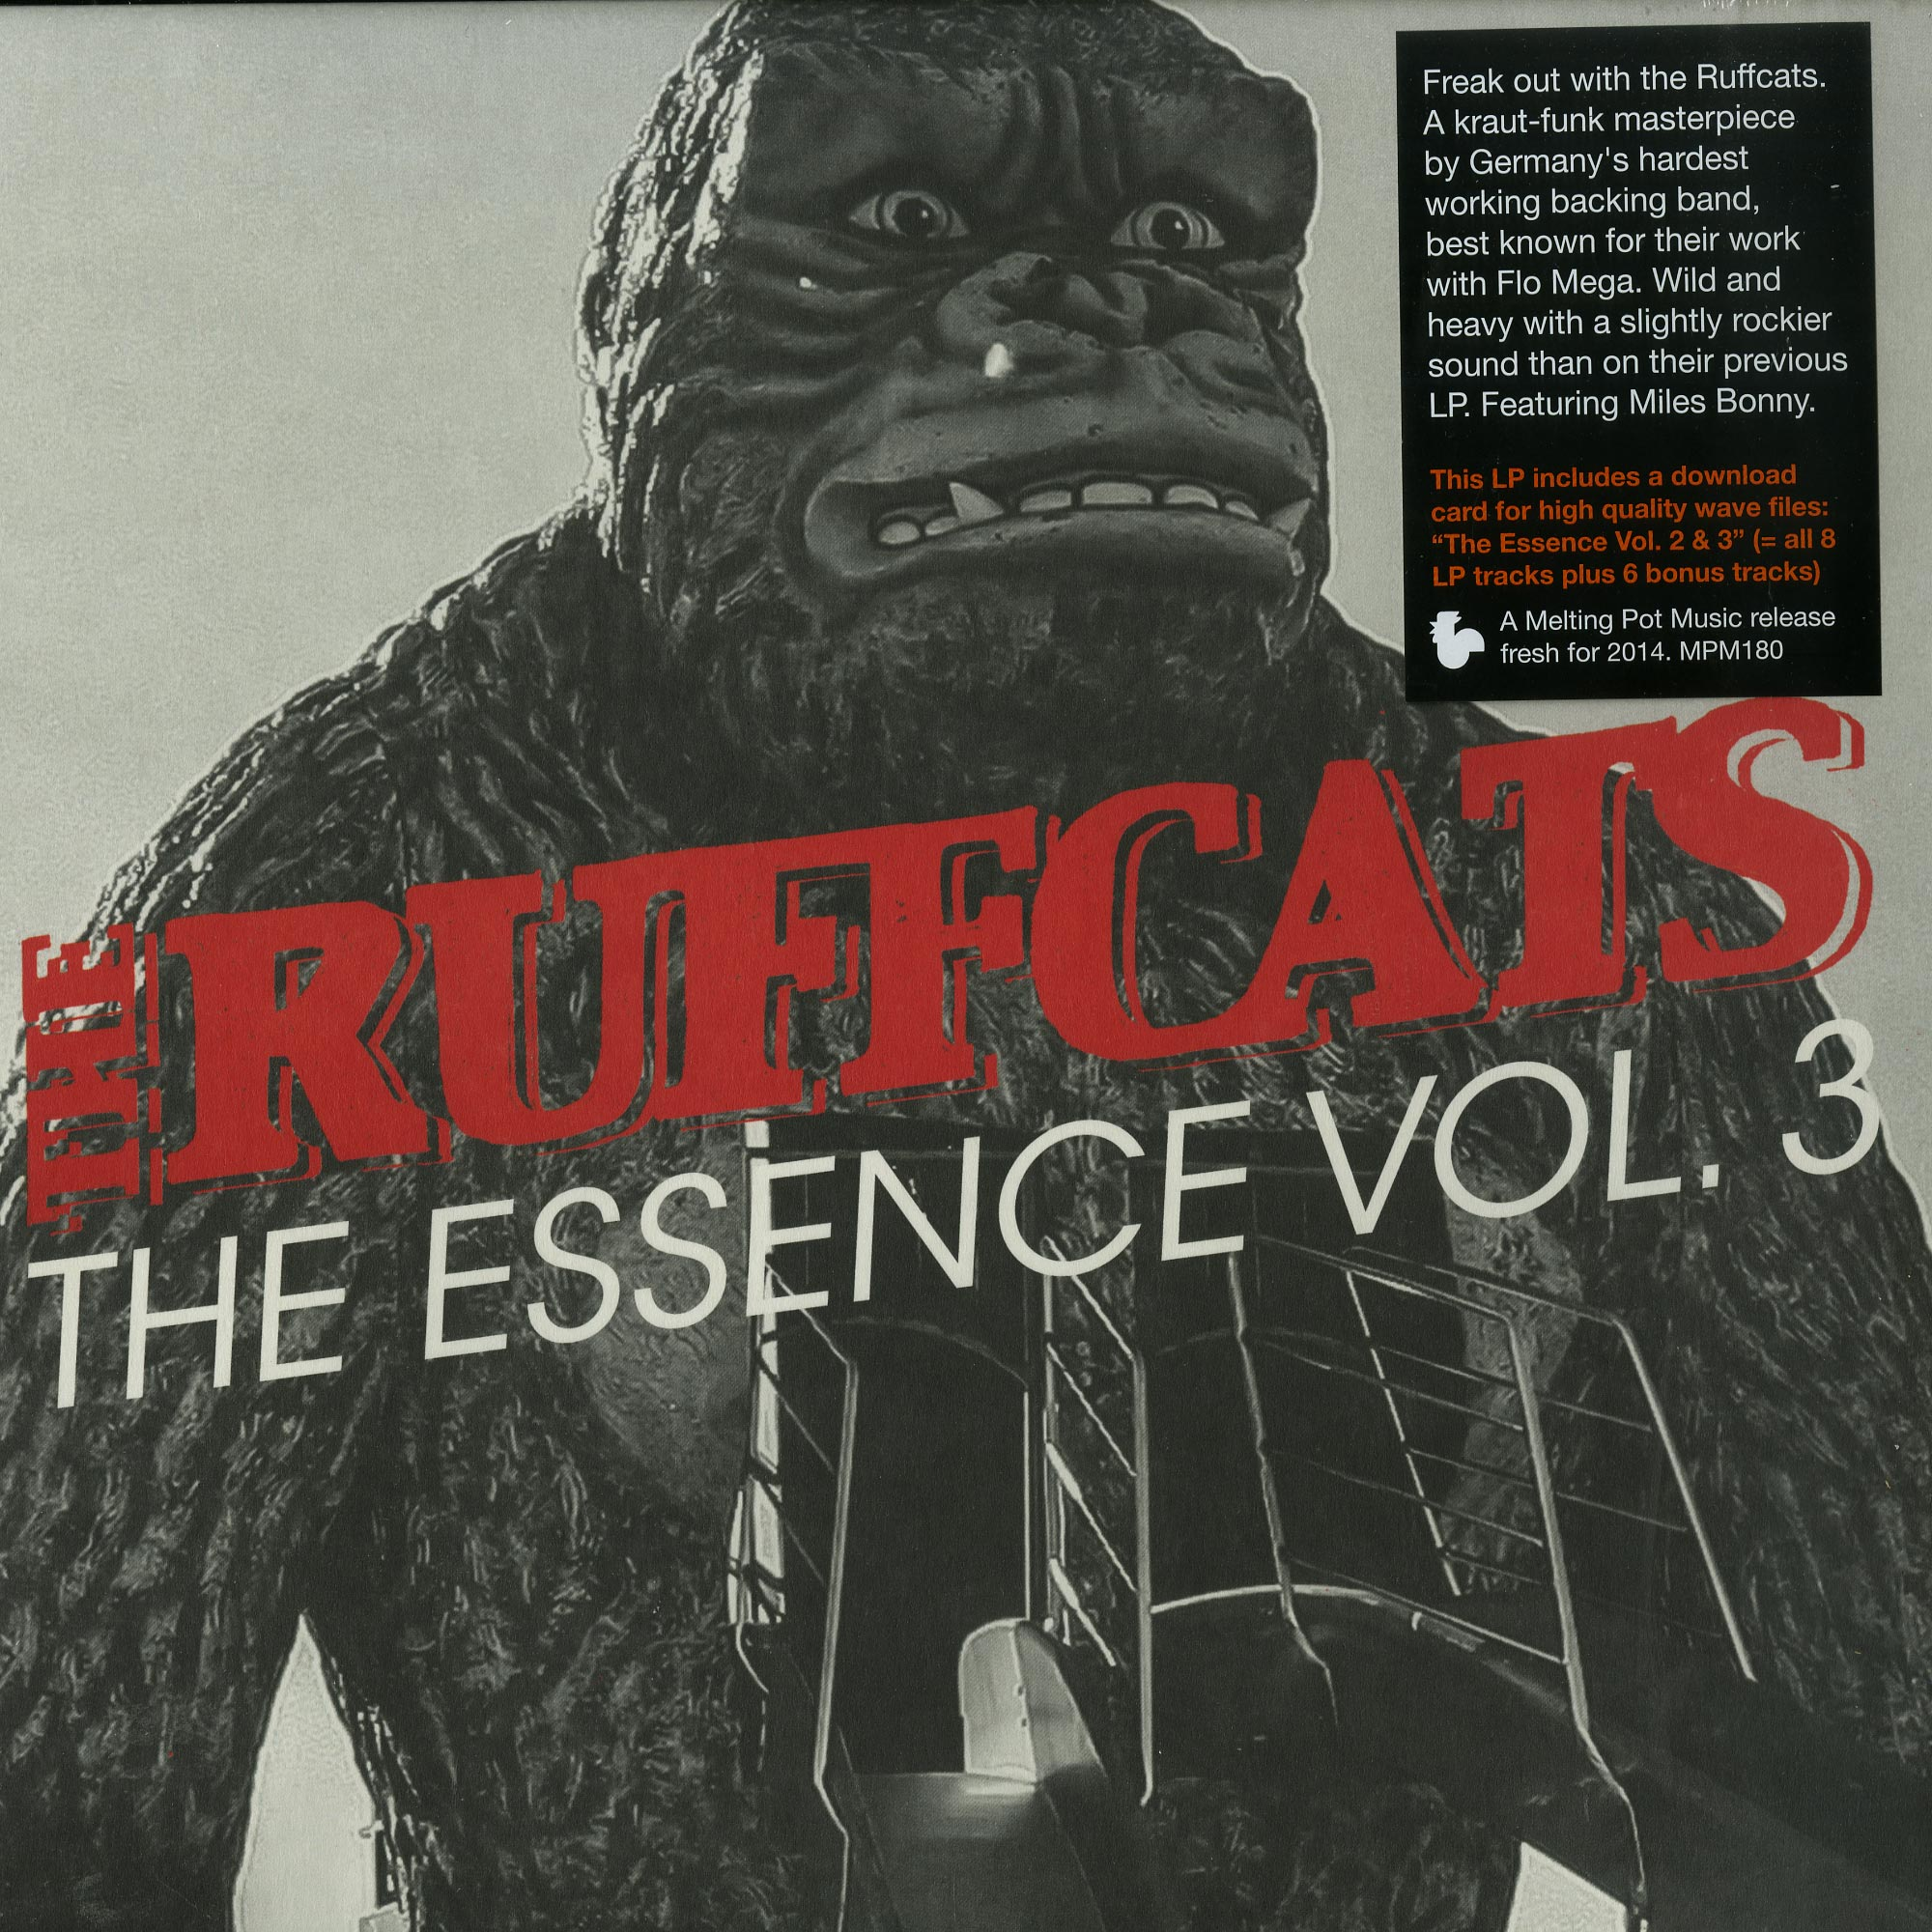 The Rufcats - THE ESSENCE VOL.3